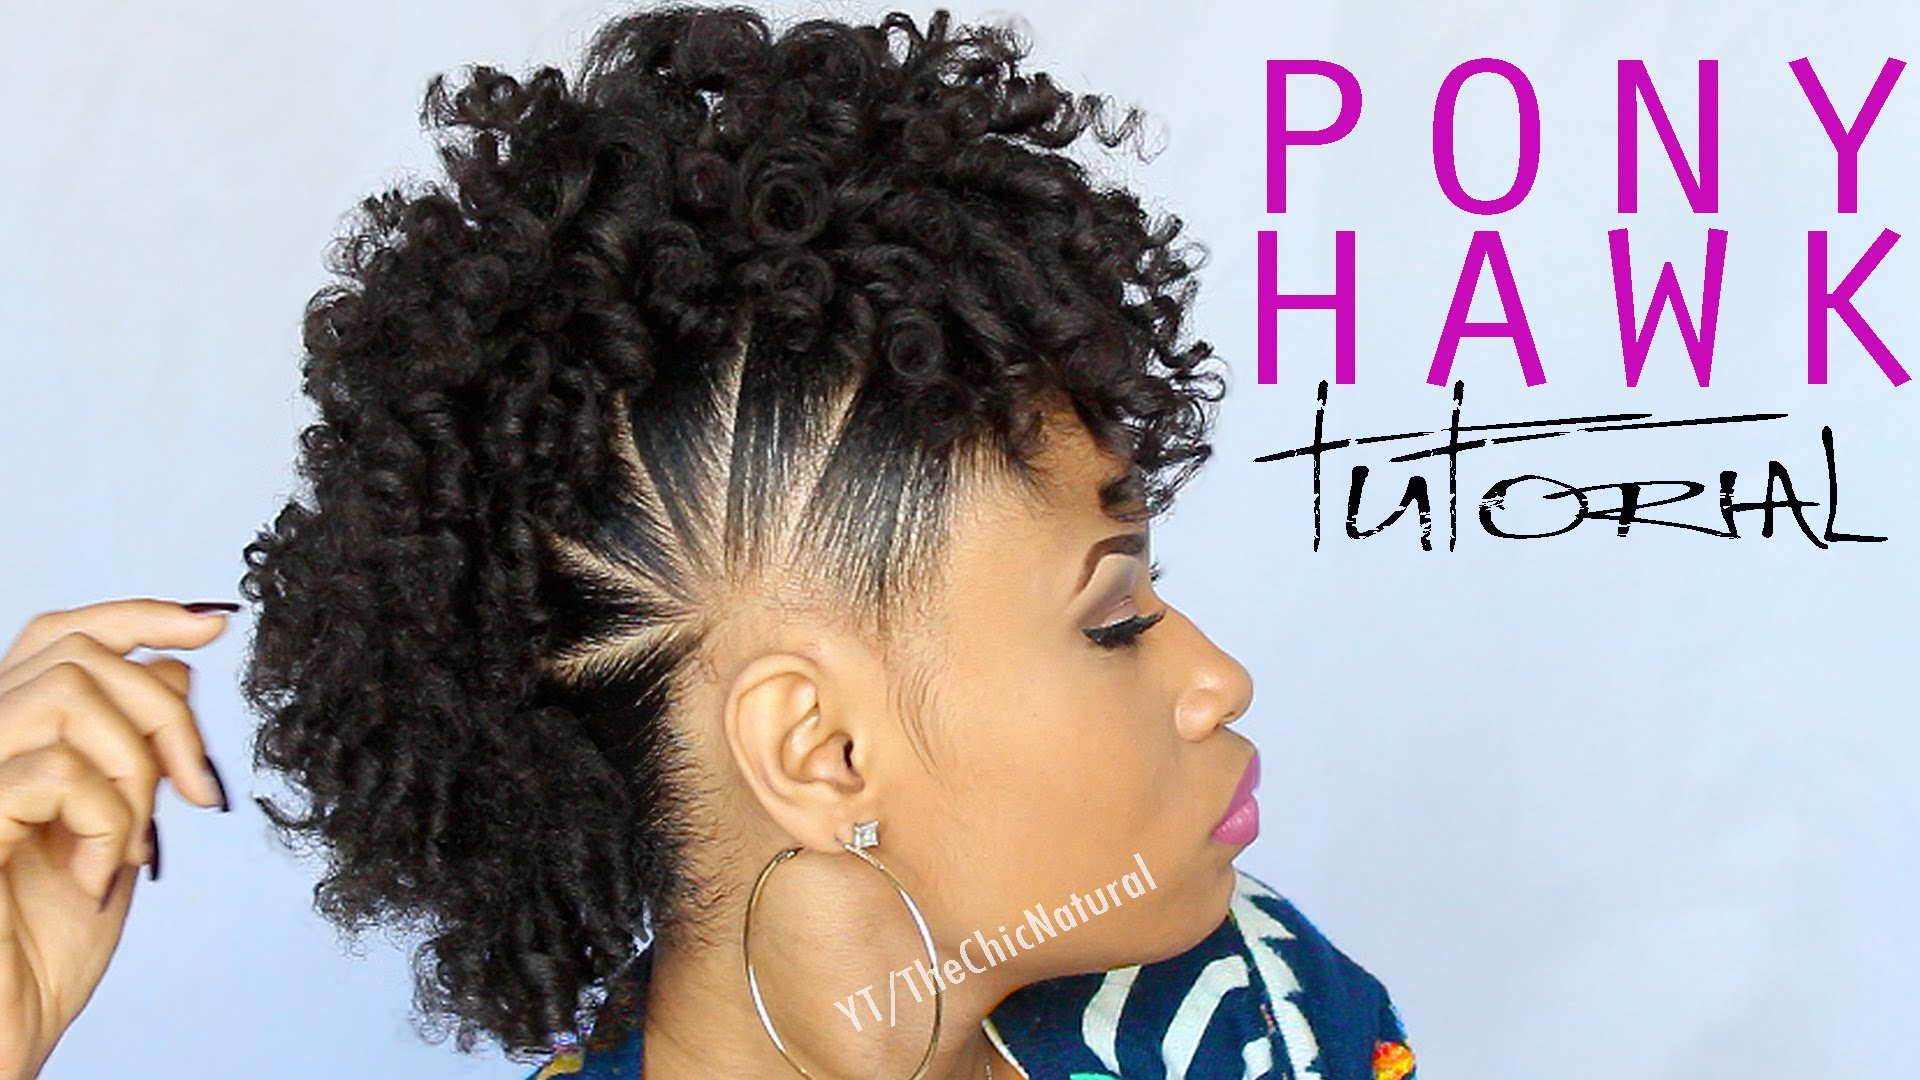 All Natural Hair Styles: Fun Pony Hawk Curly Natural Hairstyle Video Tutorial